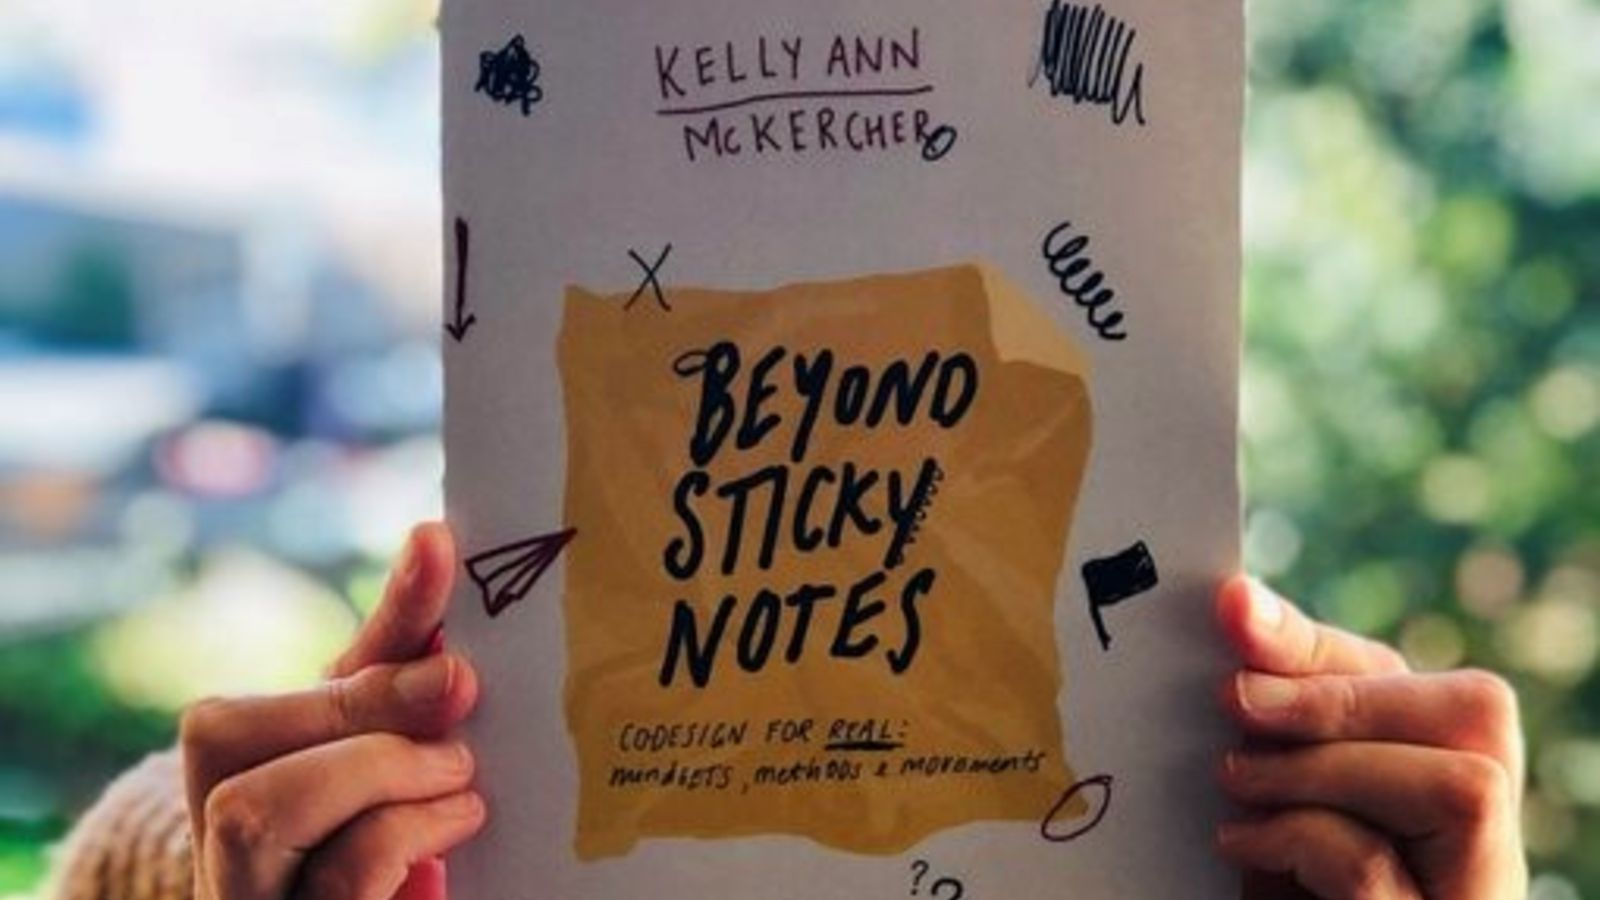 beyond sticky notes book cover